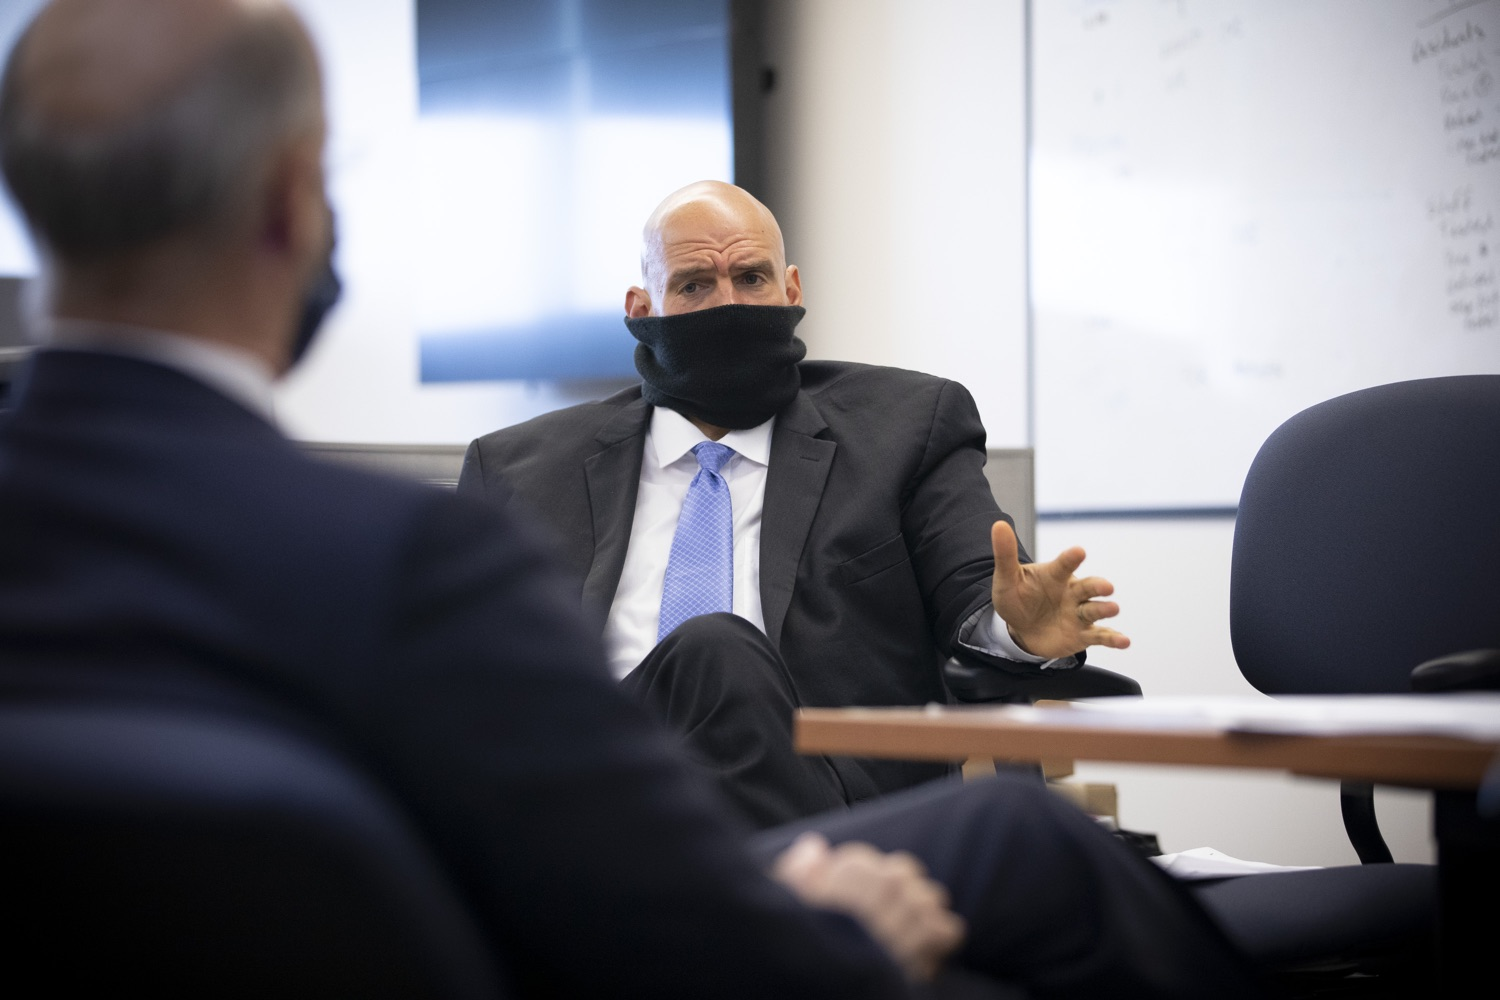 """<a href=""""https://filesource.wostreaming.net/commonwealthofpa/photo/18239_gov_recMarijuana_dz_005.jpg"""" target=""""_blank"""">⇣Download Photo<br></a>Lt. Gov. John Fetterman speaking with Governor Tom Wolf before the event. Governor Tom Wolf and Lt. Governor John Fetterman today called on the legislature to take up the legalization of adult-use cannabis to help with the states economic recovery amid COVID-19. Legalization will also create more outlets for important restorative justice programs in the commonwealth.  Harrisburg, PA  Sept. 3, 2020"""